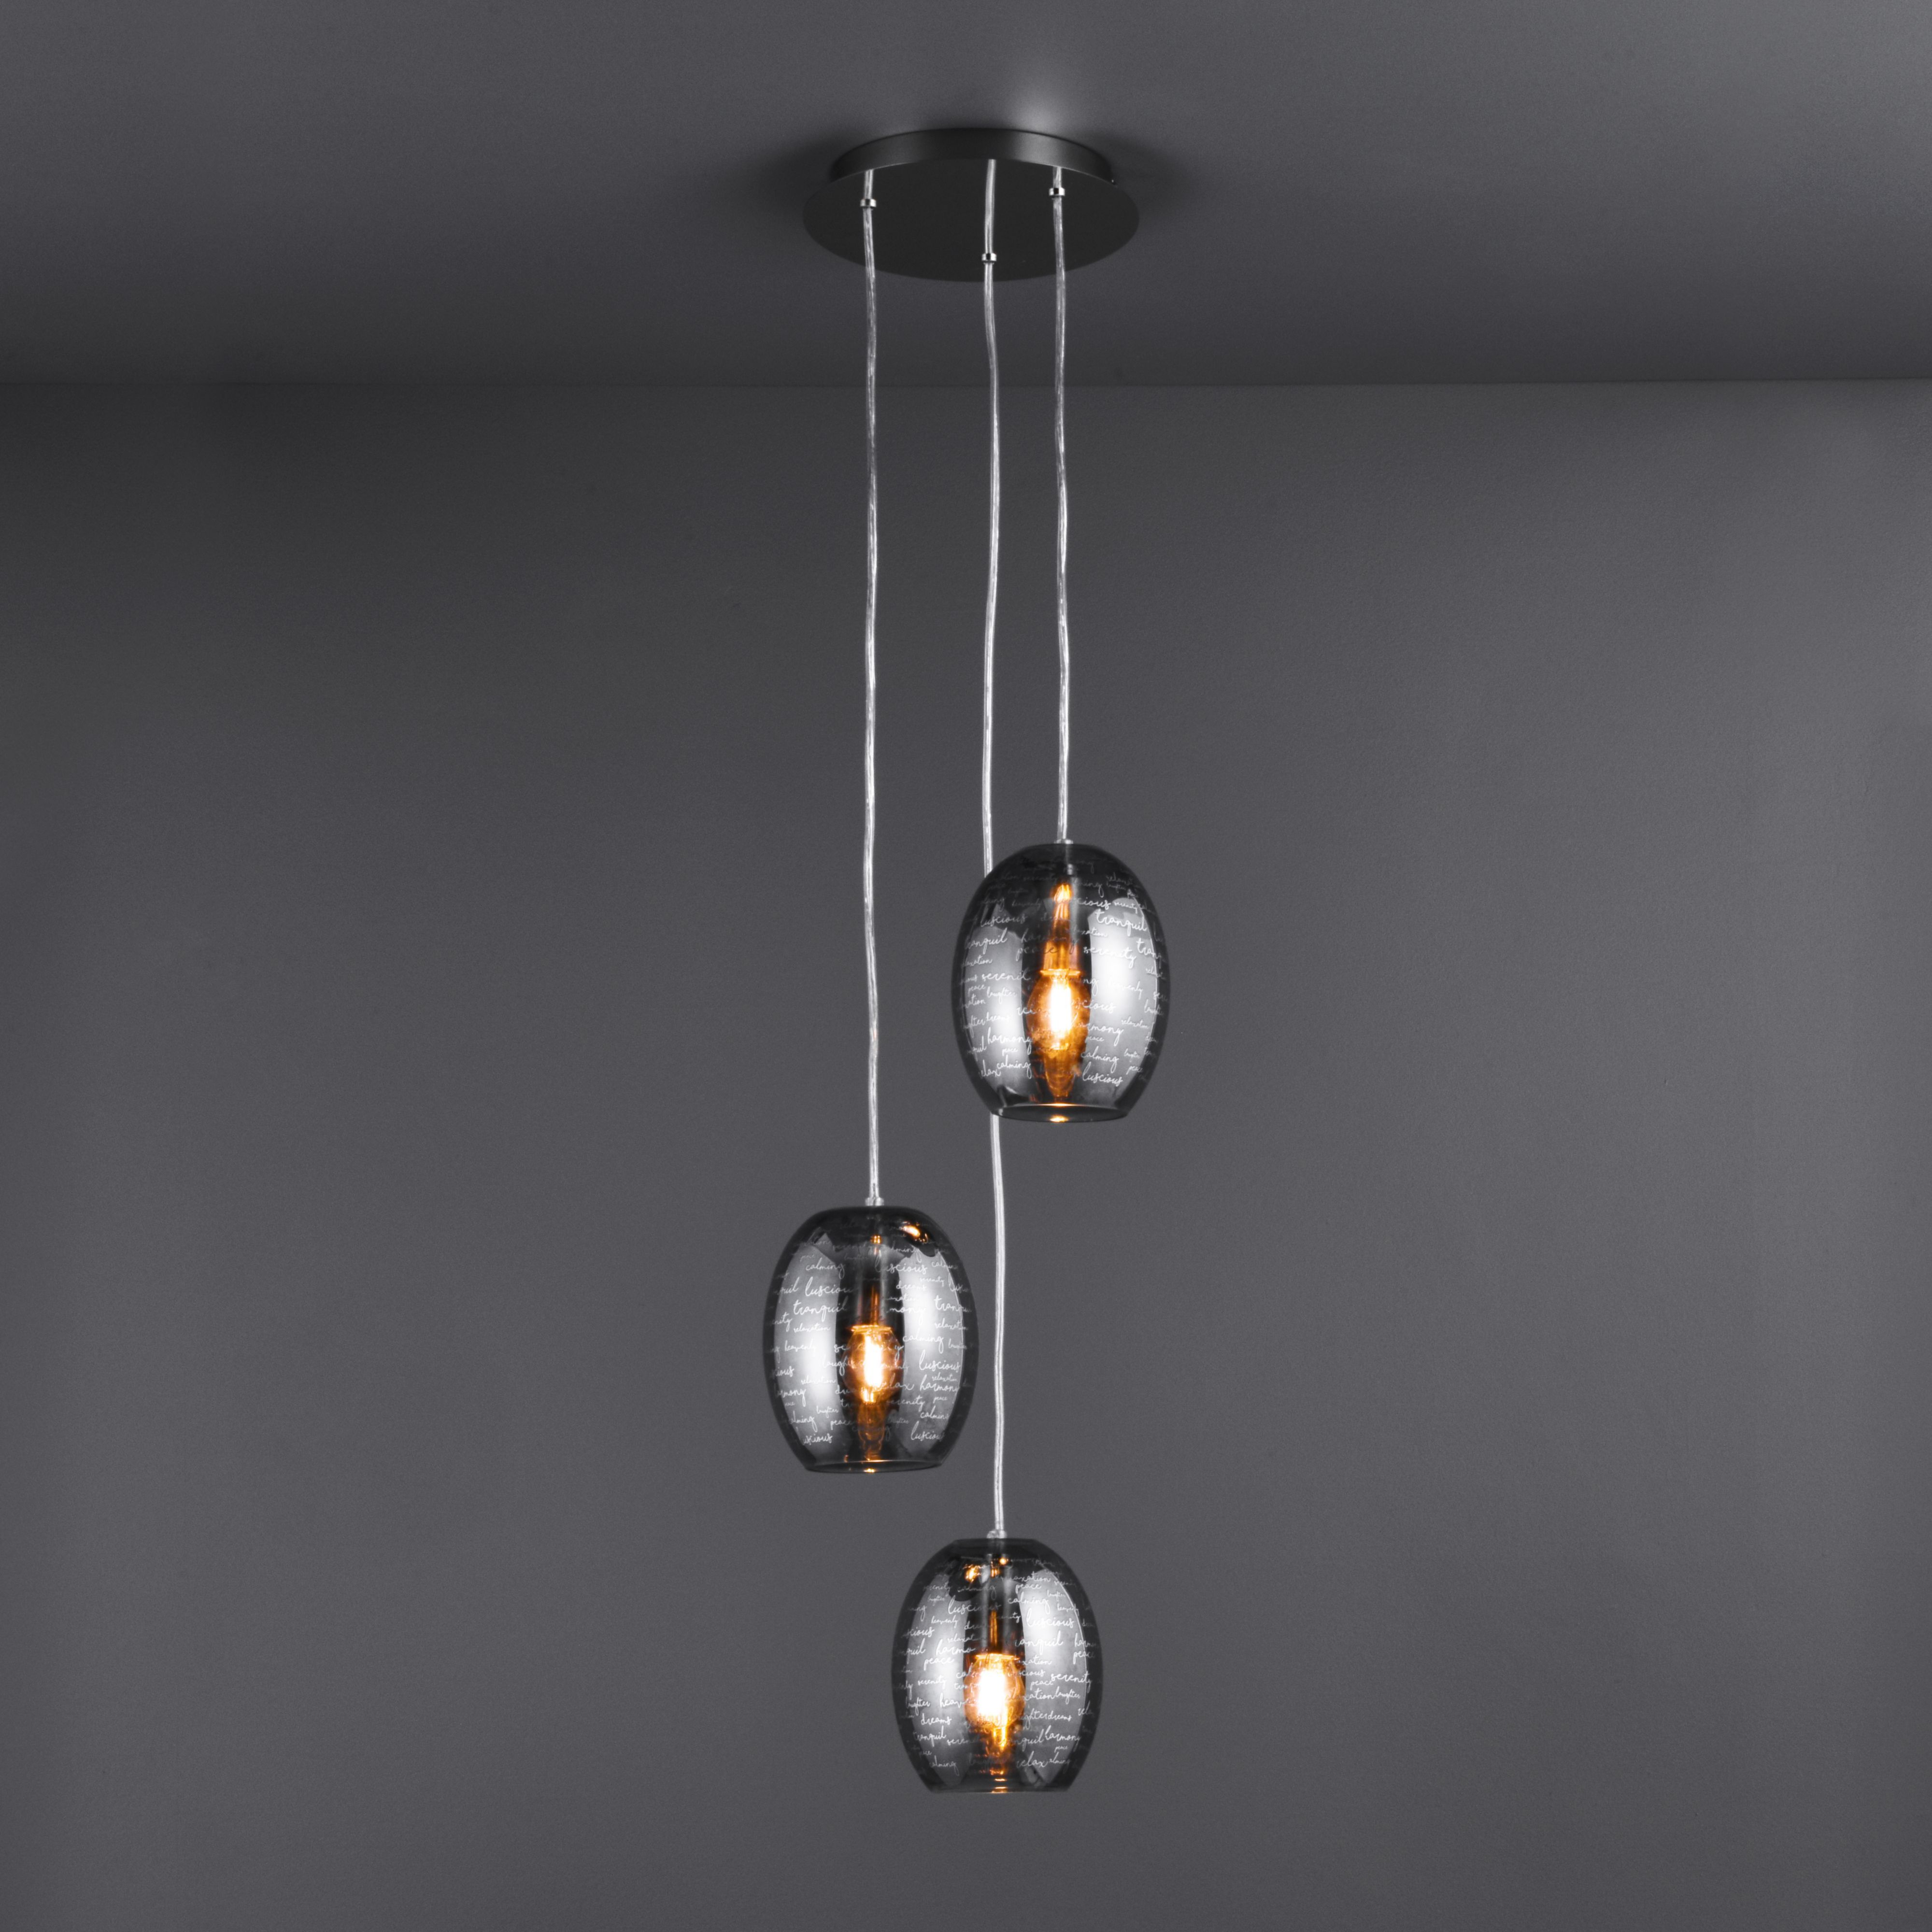 Jenessa Modern Satin nickel effect 3 Lamp Ceiling